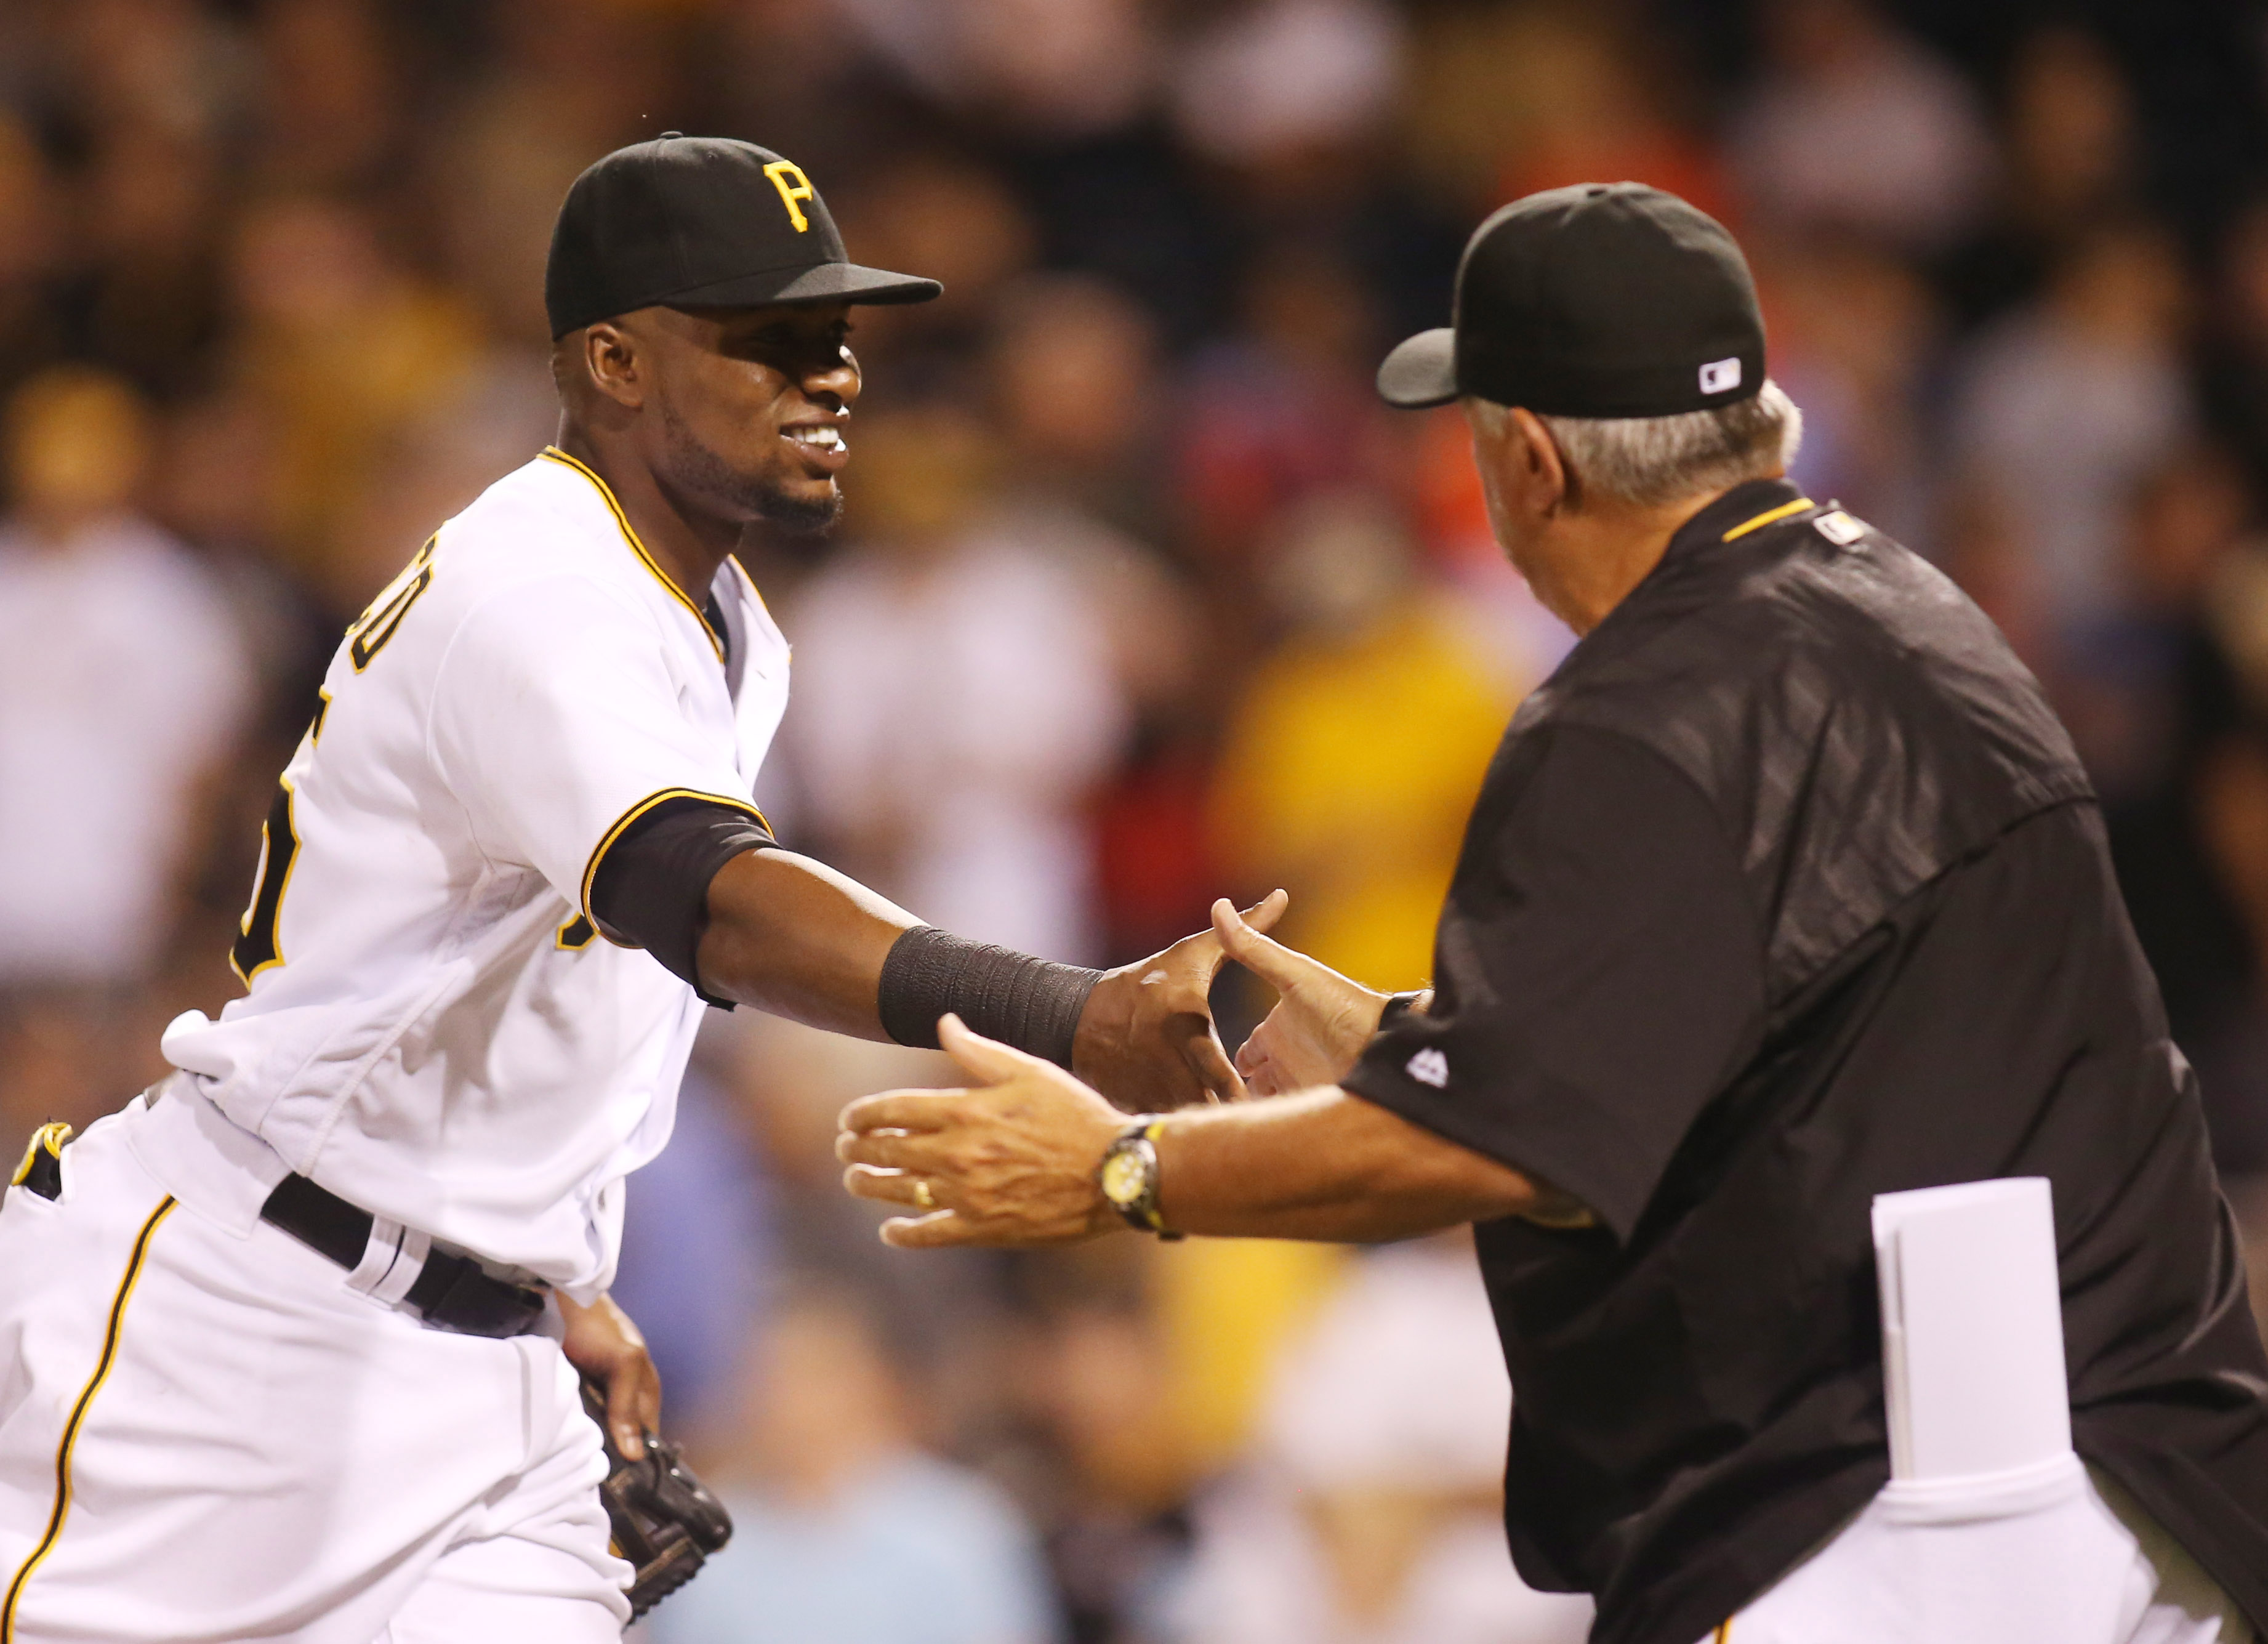 Why is Clint Hurdle protecting Gregory Polanco?